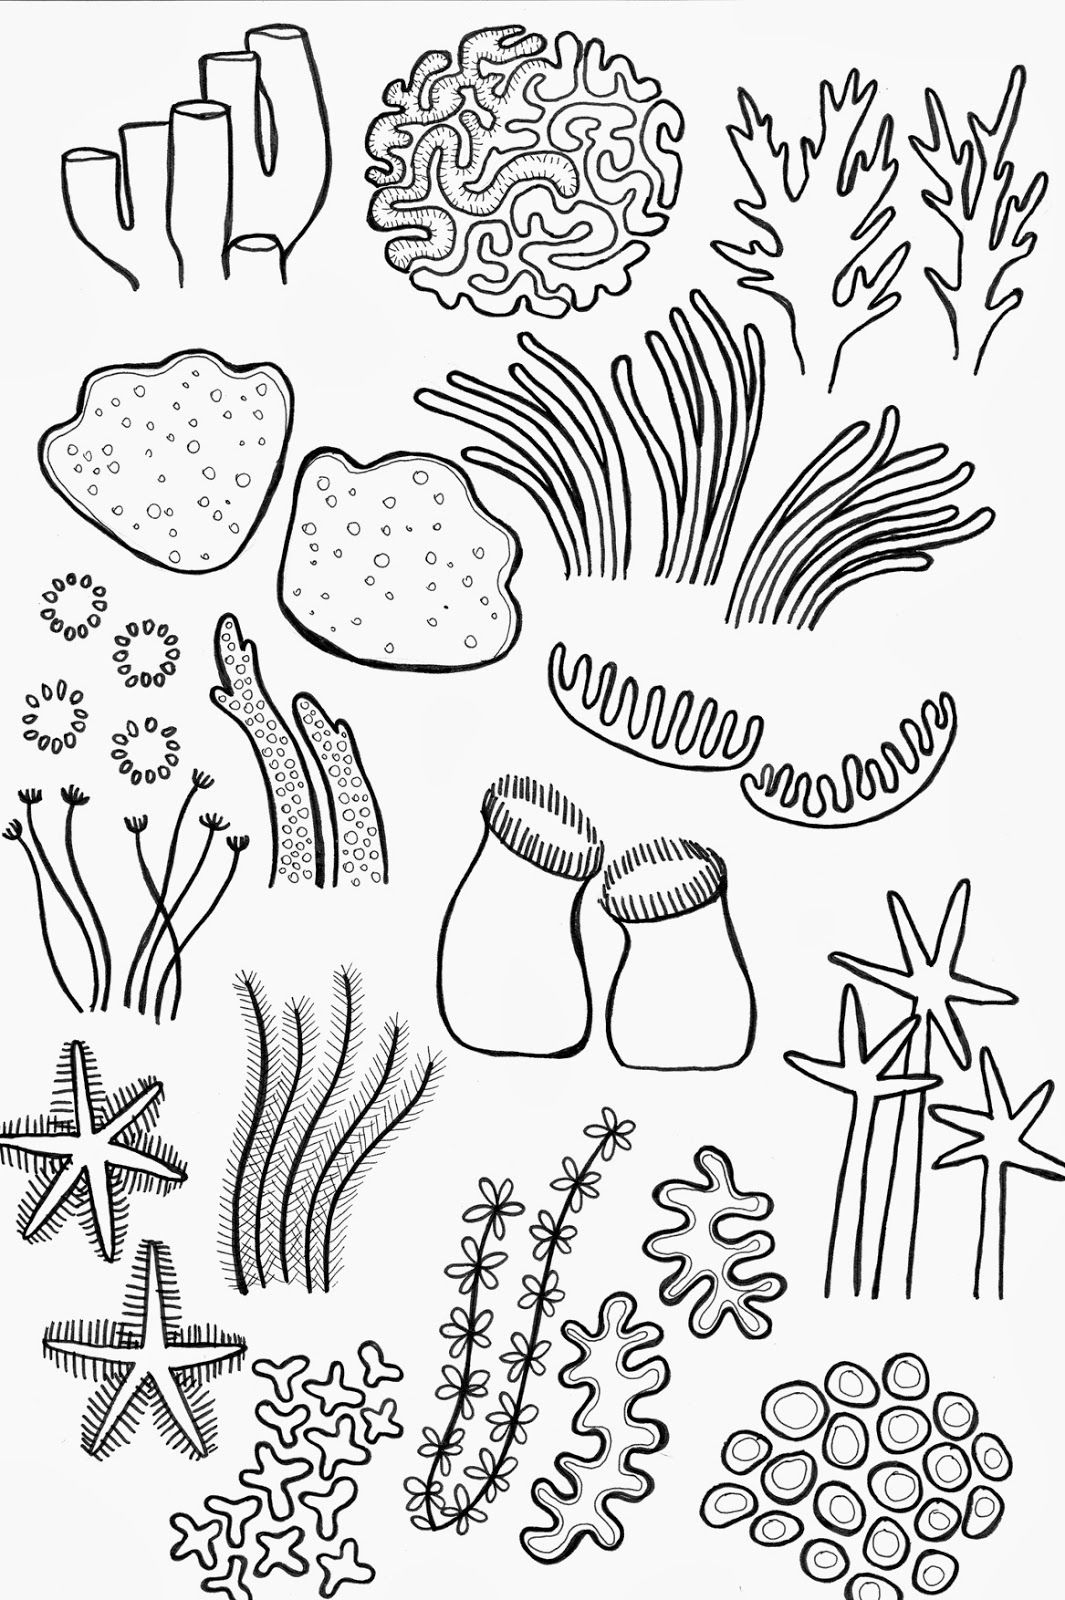 Reef clipart sketch. Drawing underwater coral by